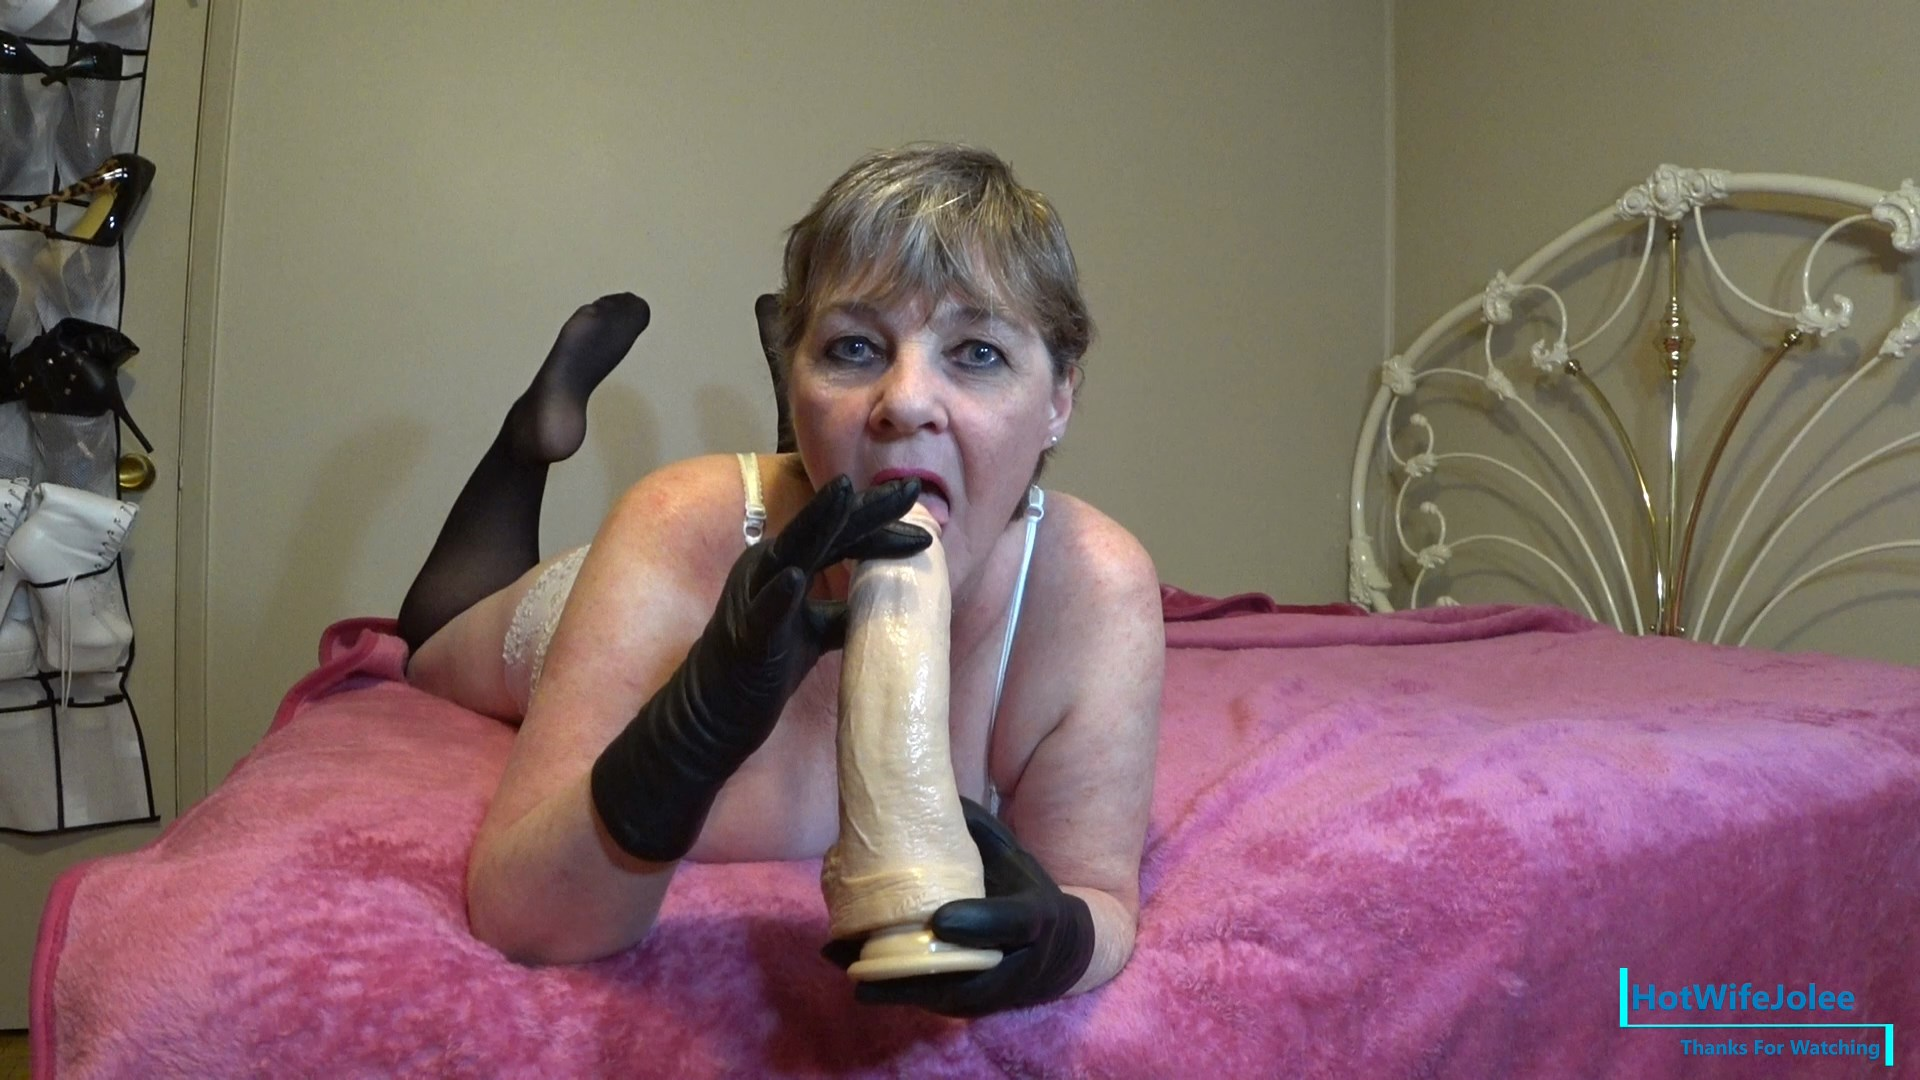 HotWifeJolee - Step-Mom owns your Big Cock